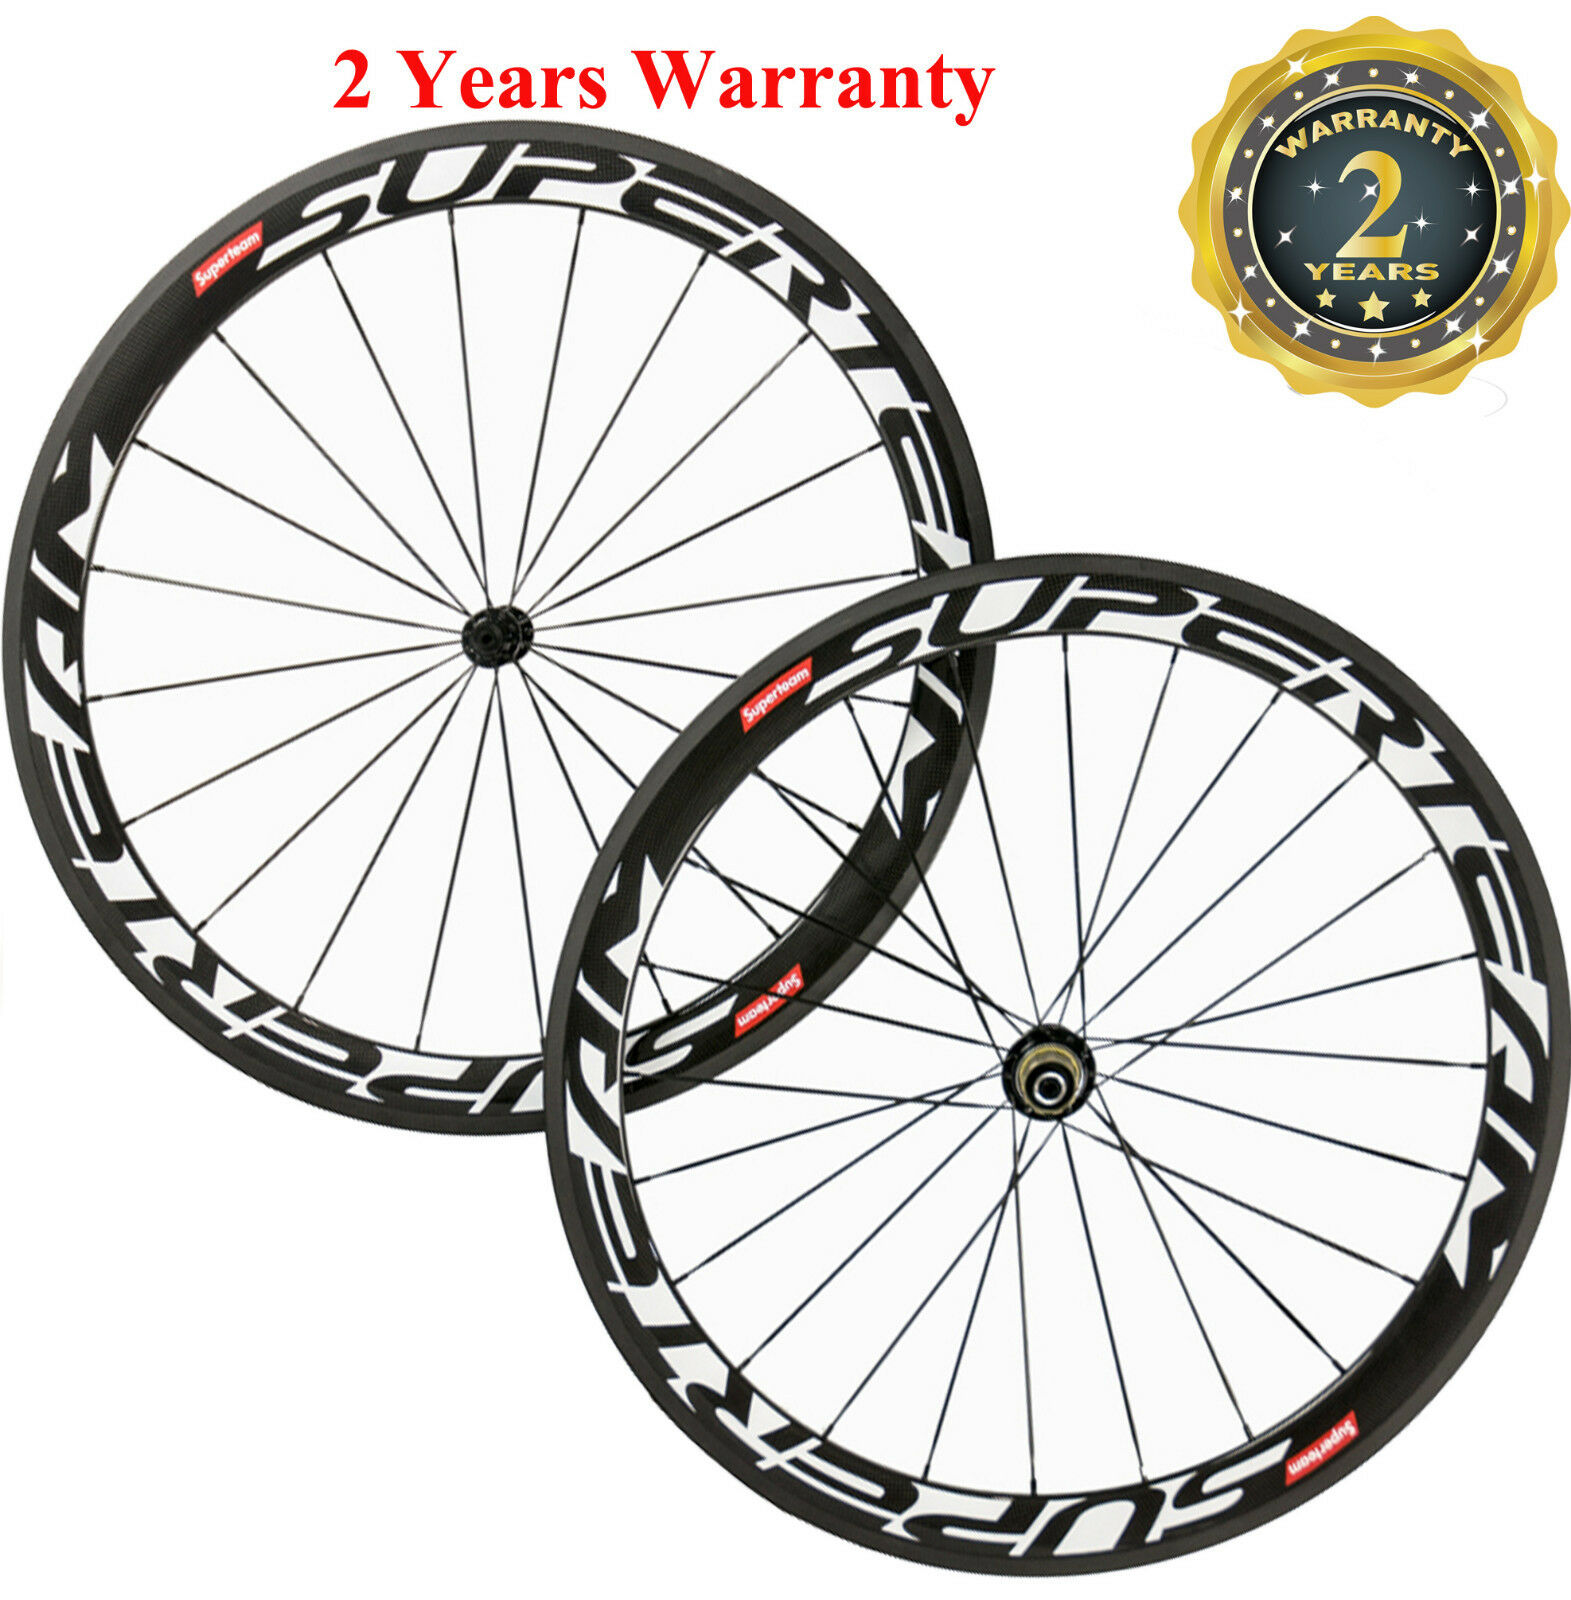 700C 50mm Carbon Wheels Road Bicycle Wheelset Carbon Fiber Bike Wheel Campagnolo